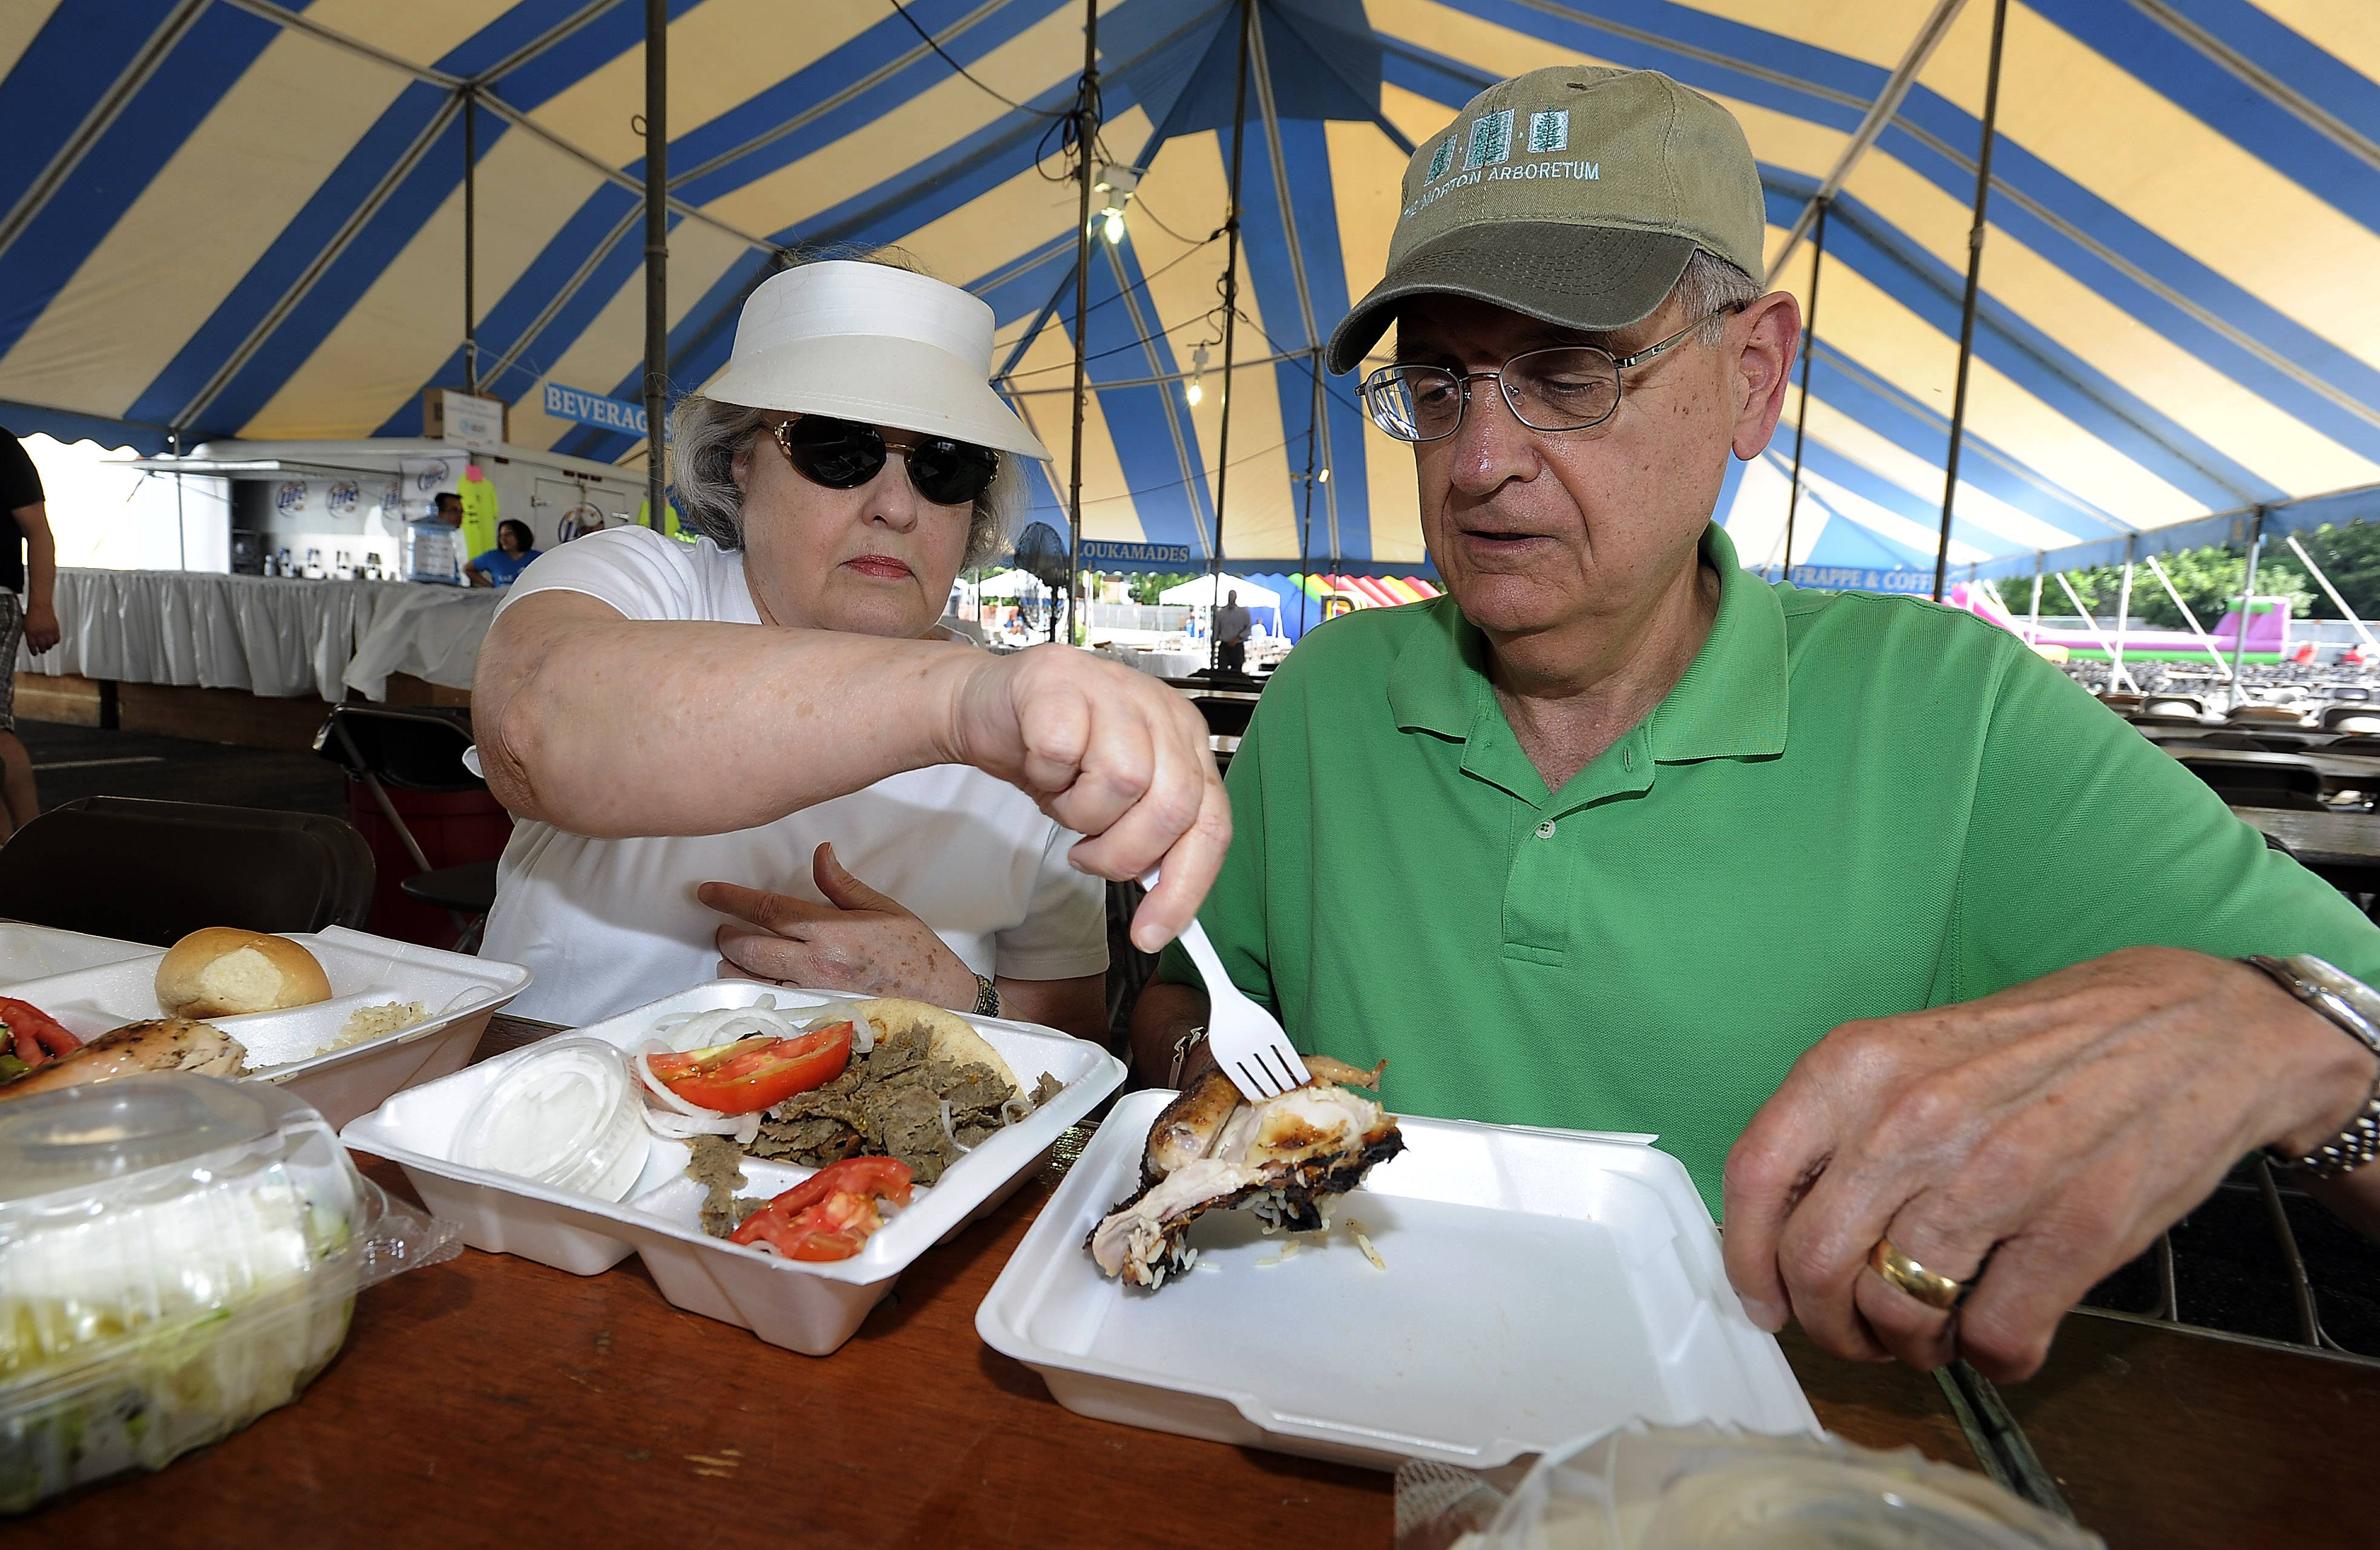 Tom and Gloria Garrison, of Schaumburg, beat the crowd surge and are the first ones in line for the chicken and gyros at the annual St. Nectarios Church Greek Fest in Palatine on Friday.